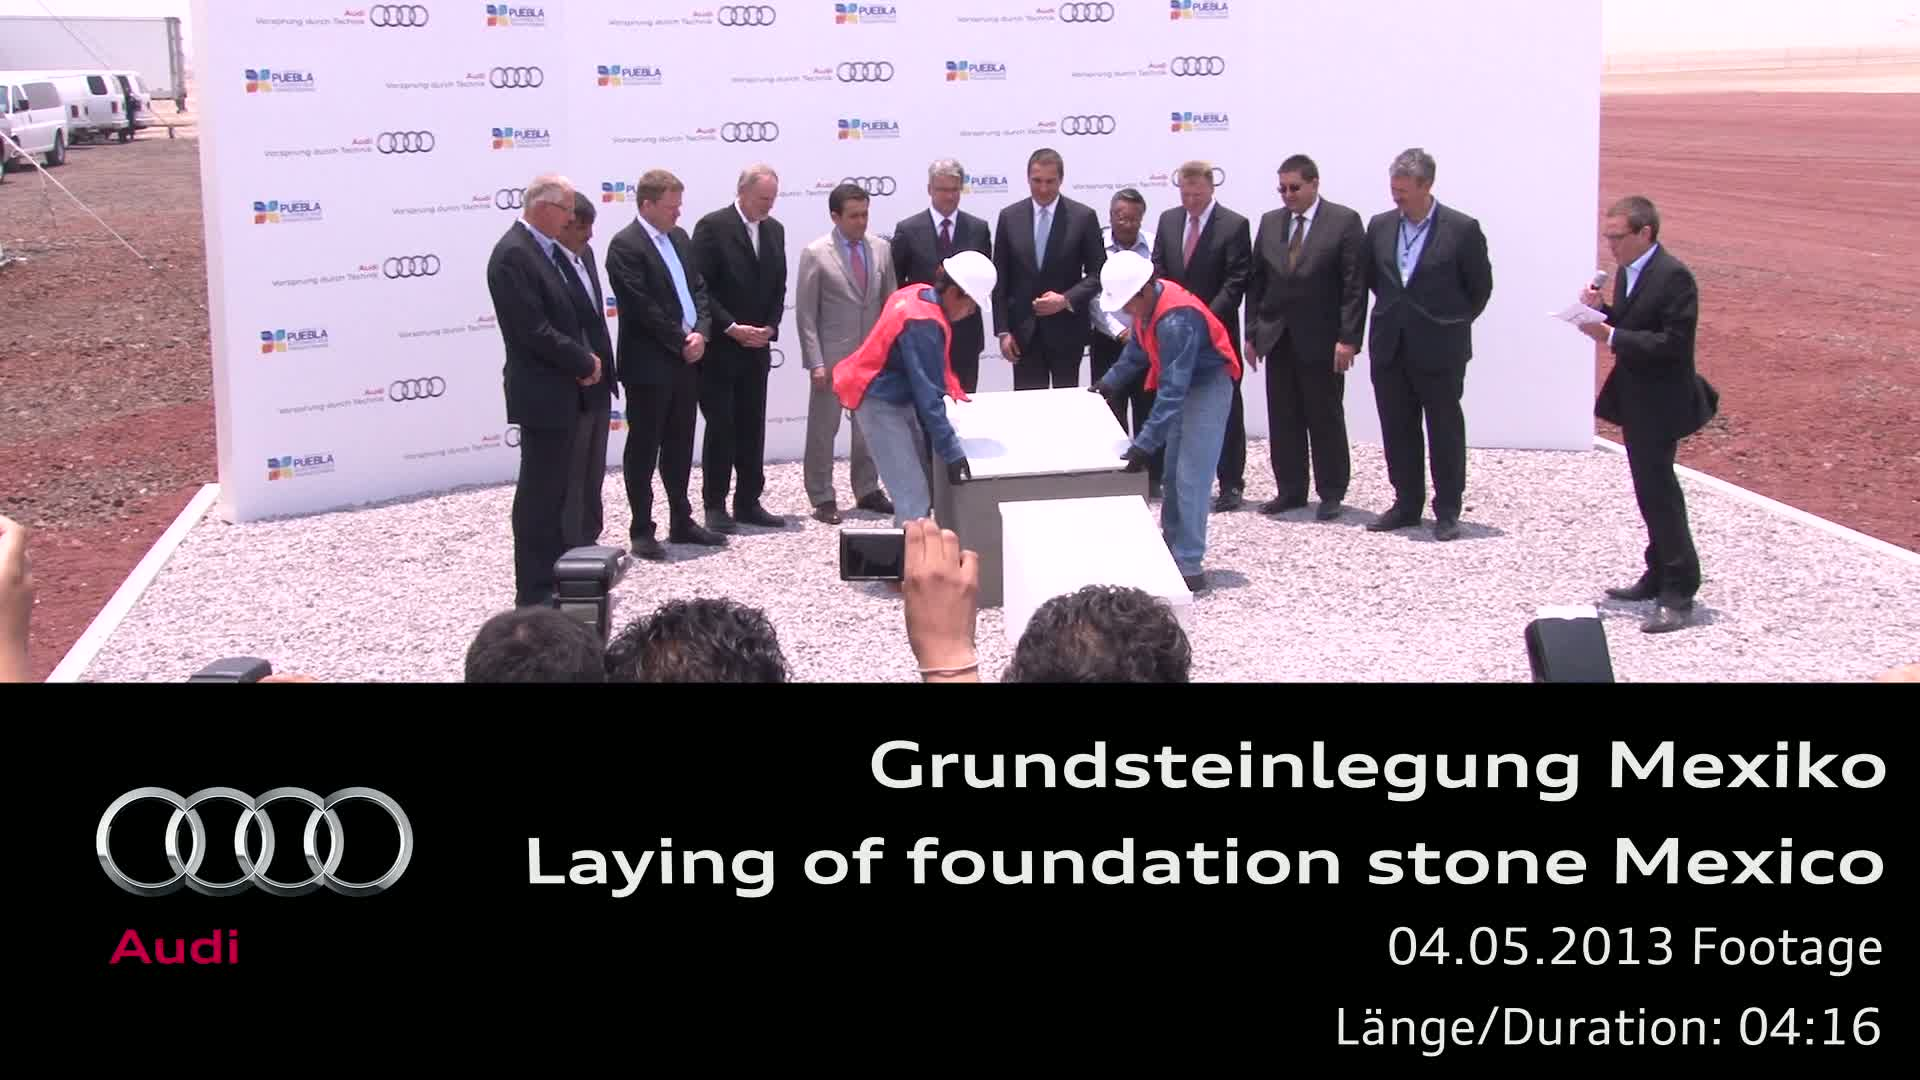 Laying of foundation stone for new plant in Mexico - Footage